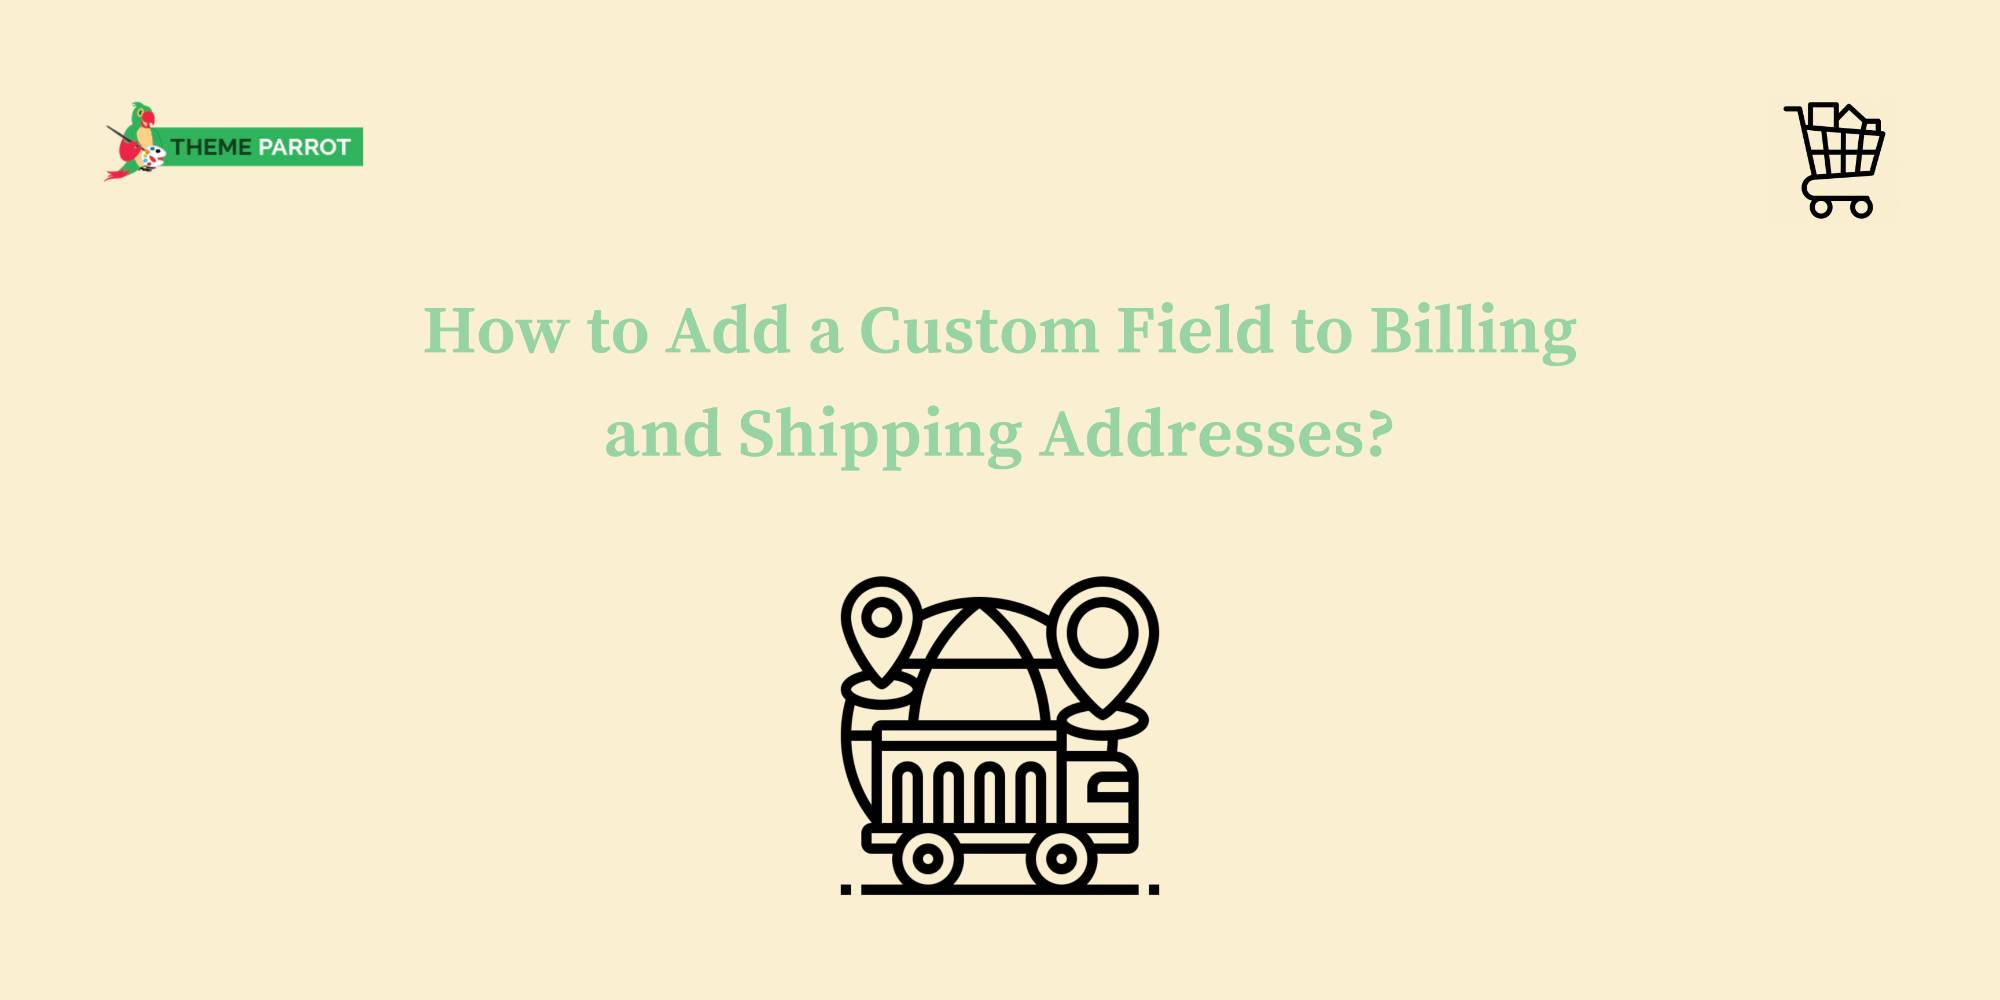 how to add a custom field to billing and shipping addresses